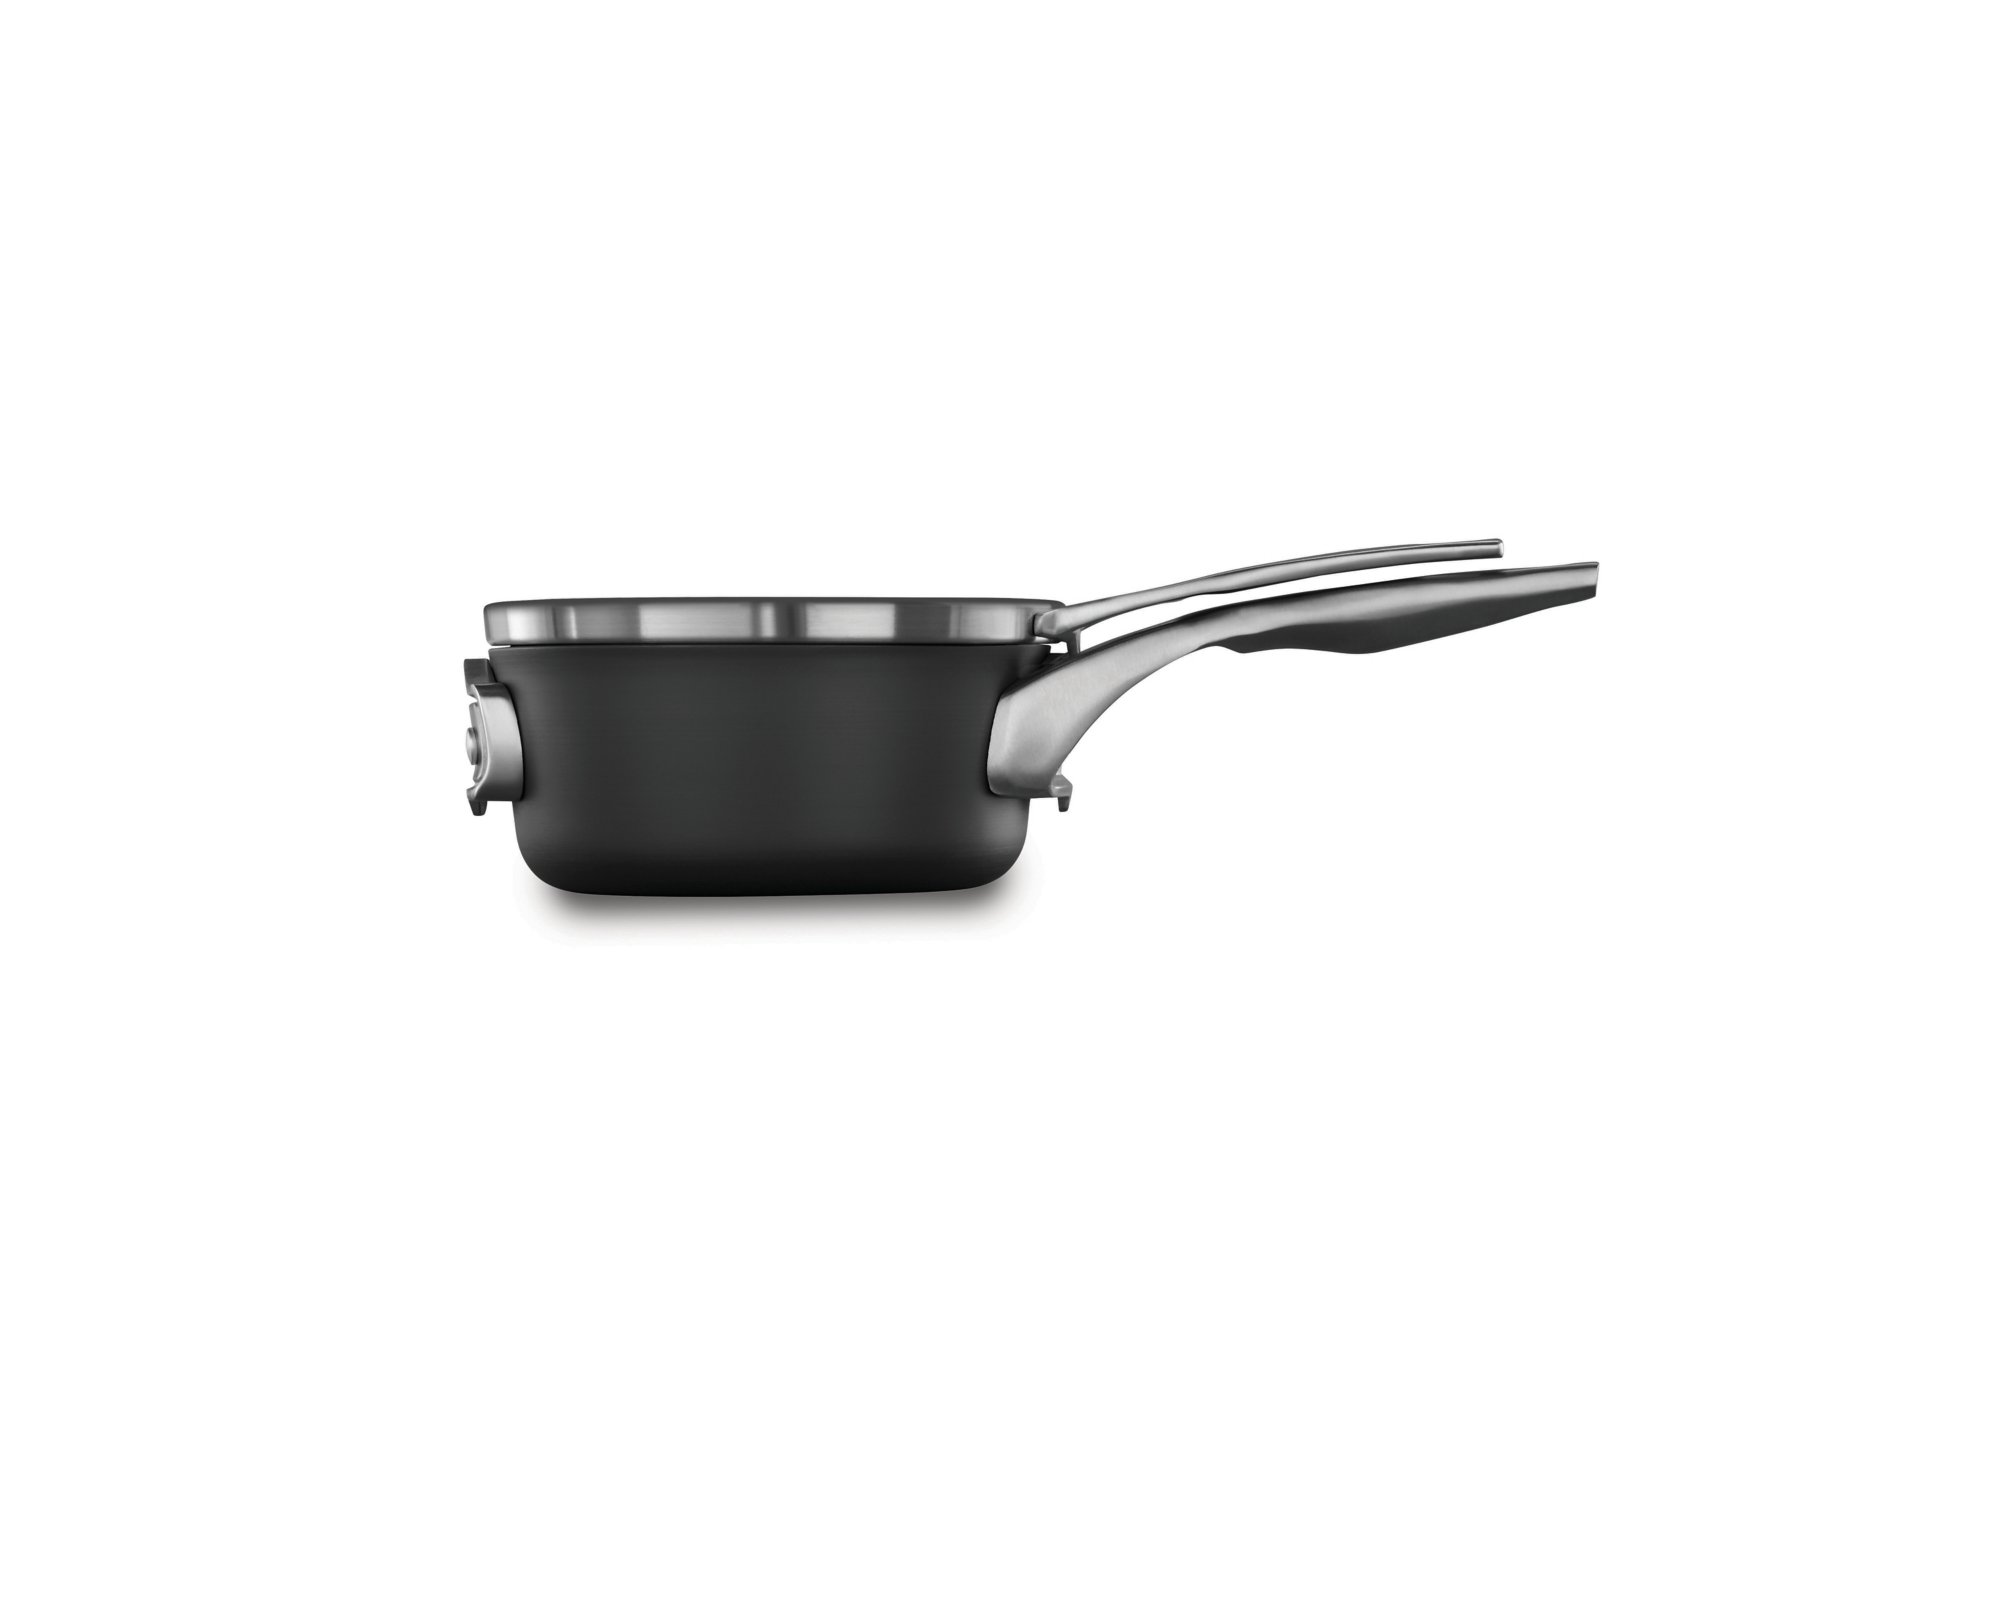 Calphalon Premier™ Space Saving Hard Anodized Nonstick 1.5 qt. Sauce Pan with Cover